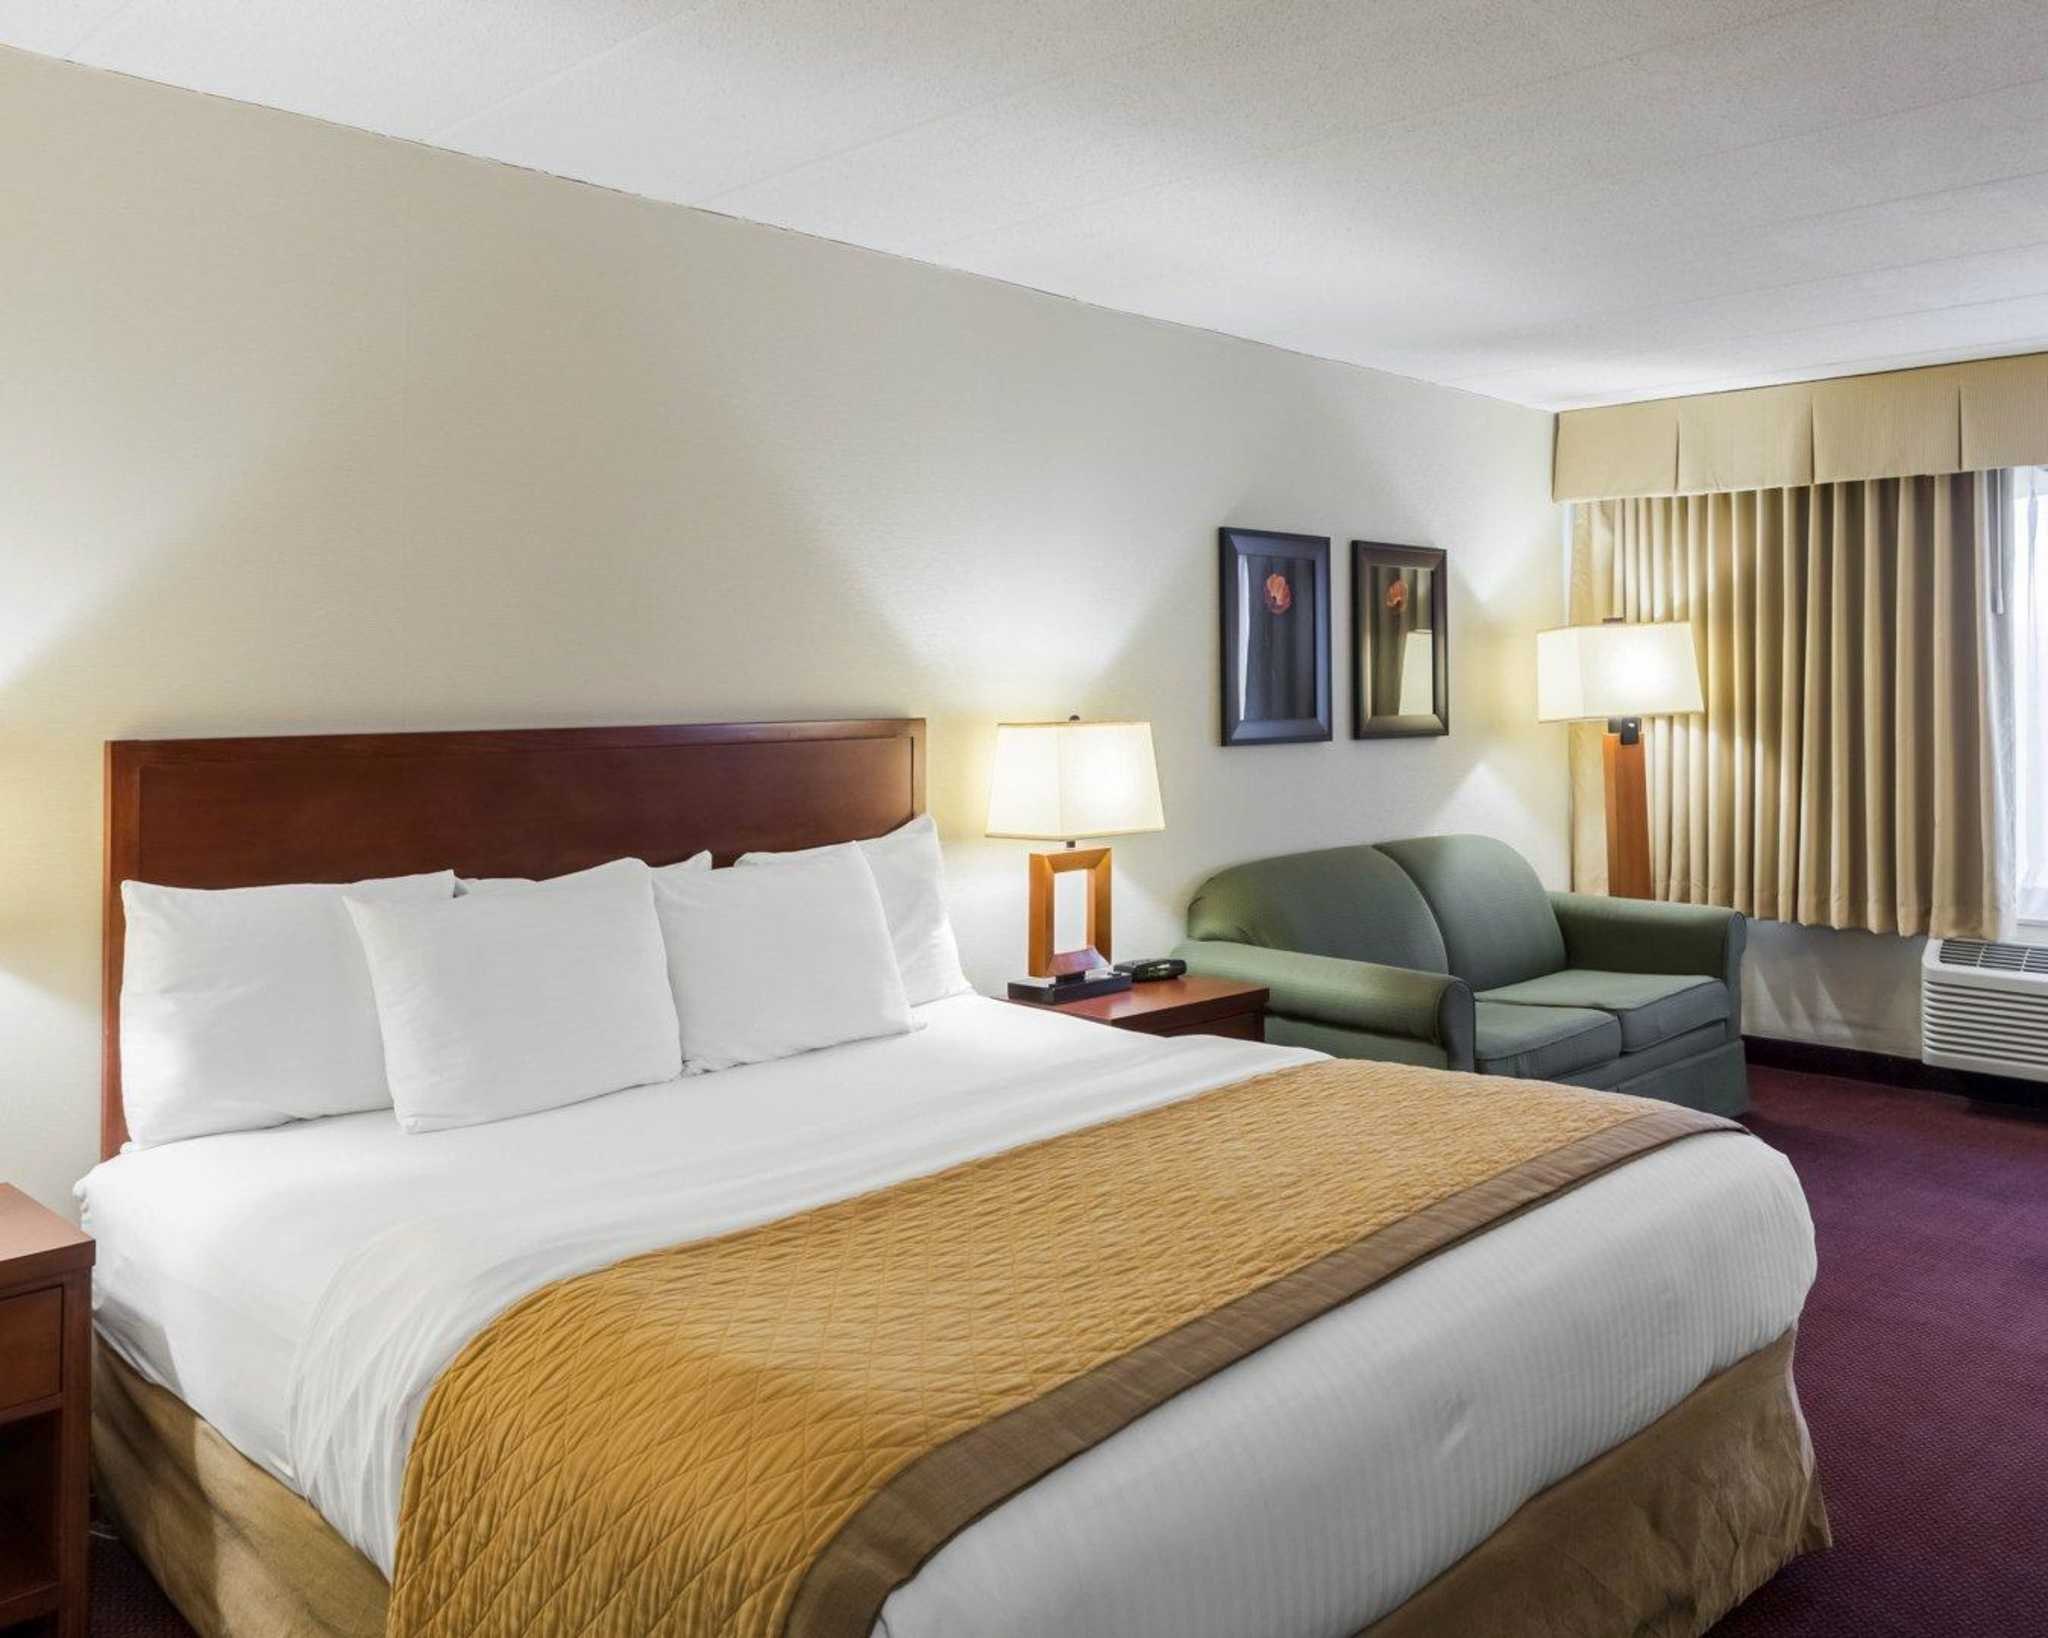 Clarion Hotel image 7